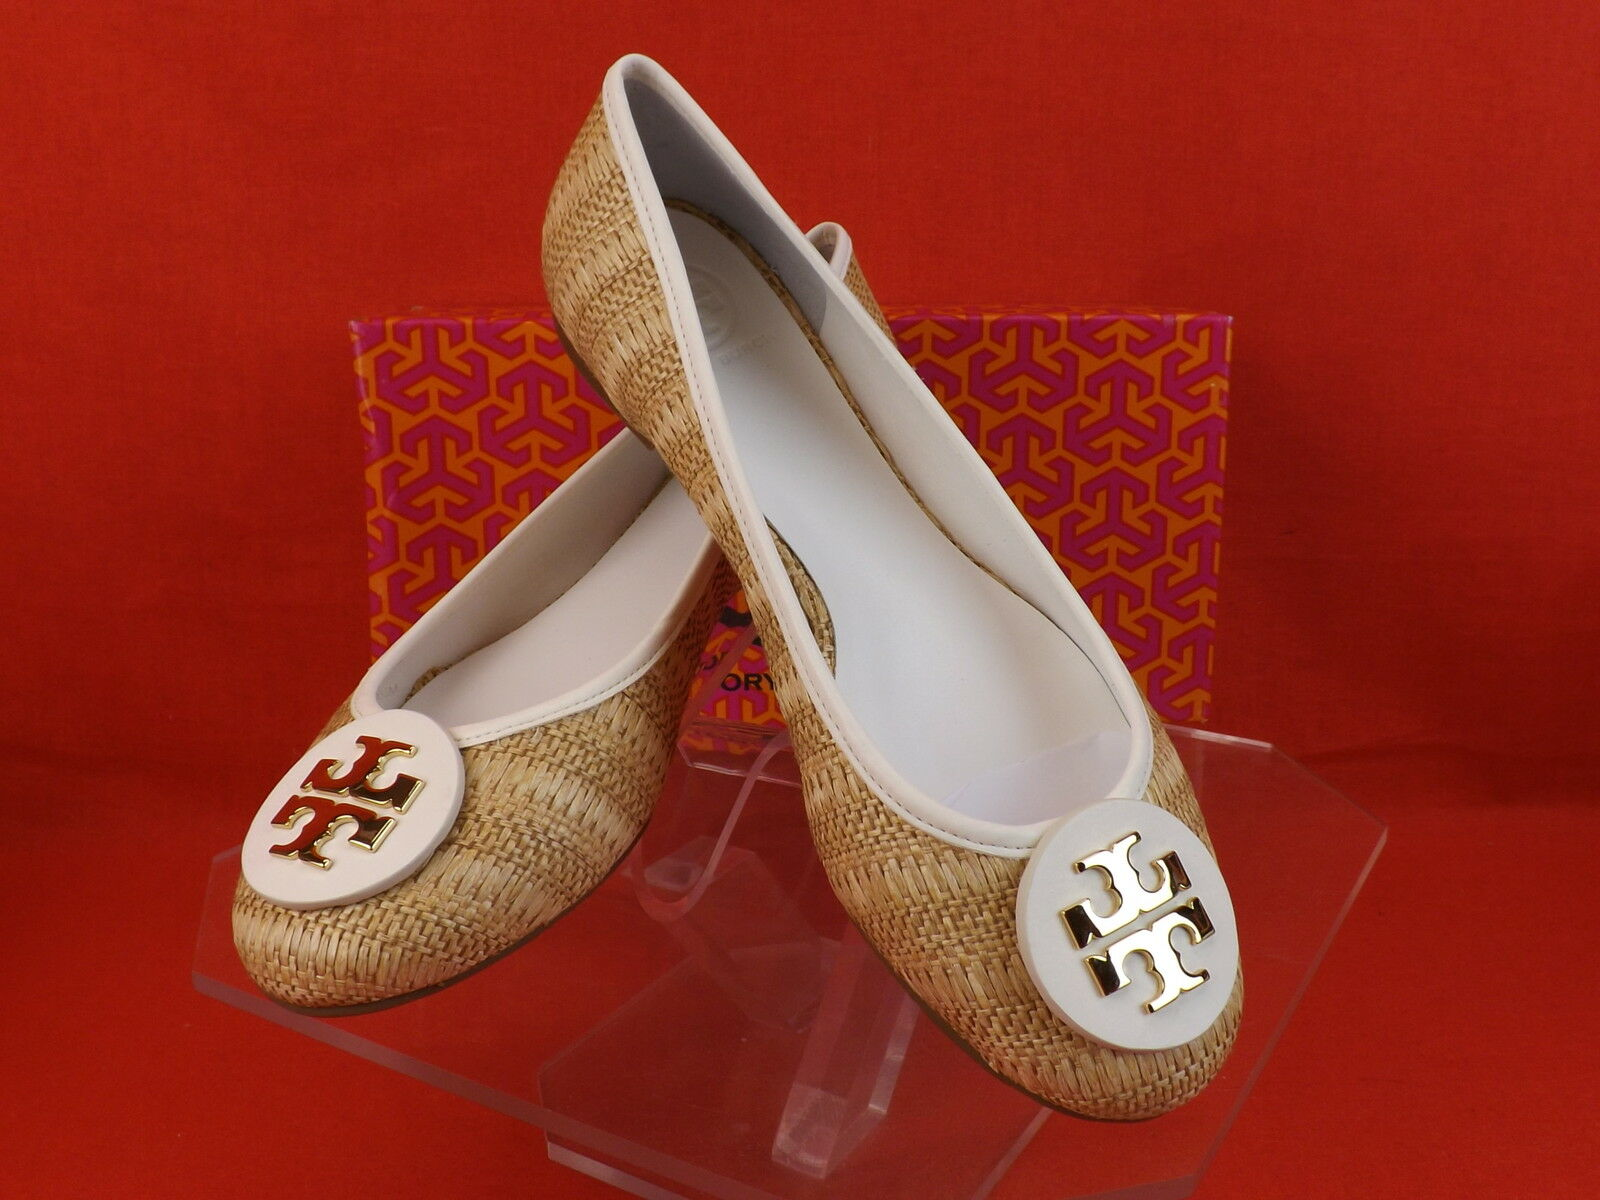 New in Box Tory Burch en Cuir Blanc Paille Raphia naturel Big Reva Ballerines 10.5